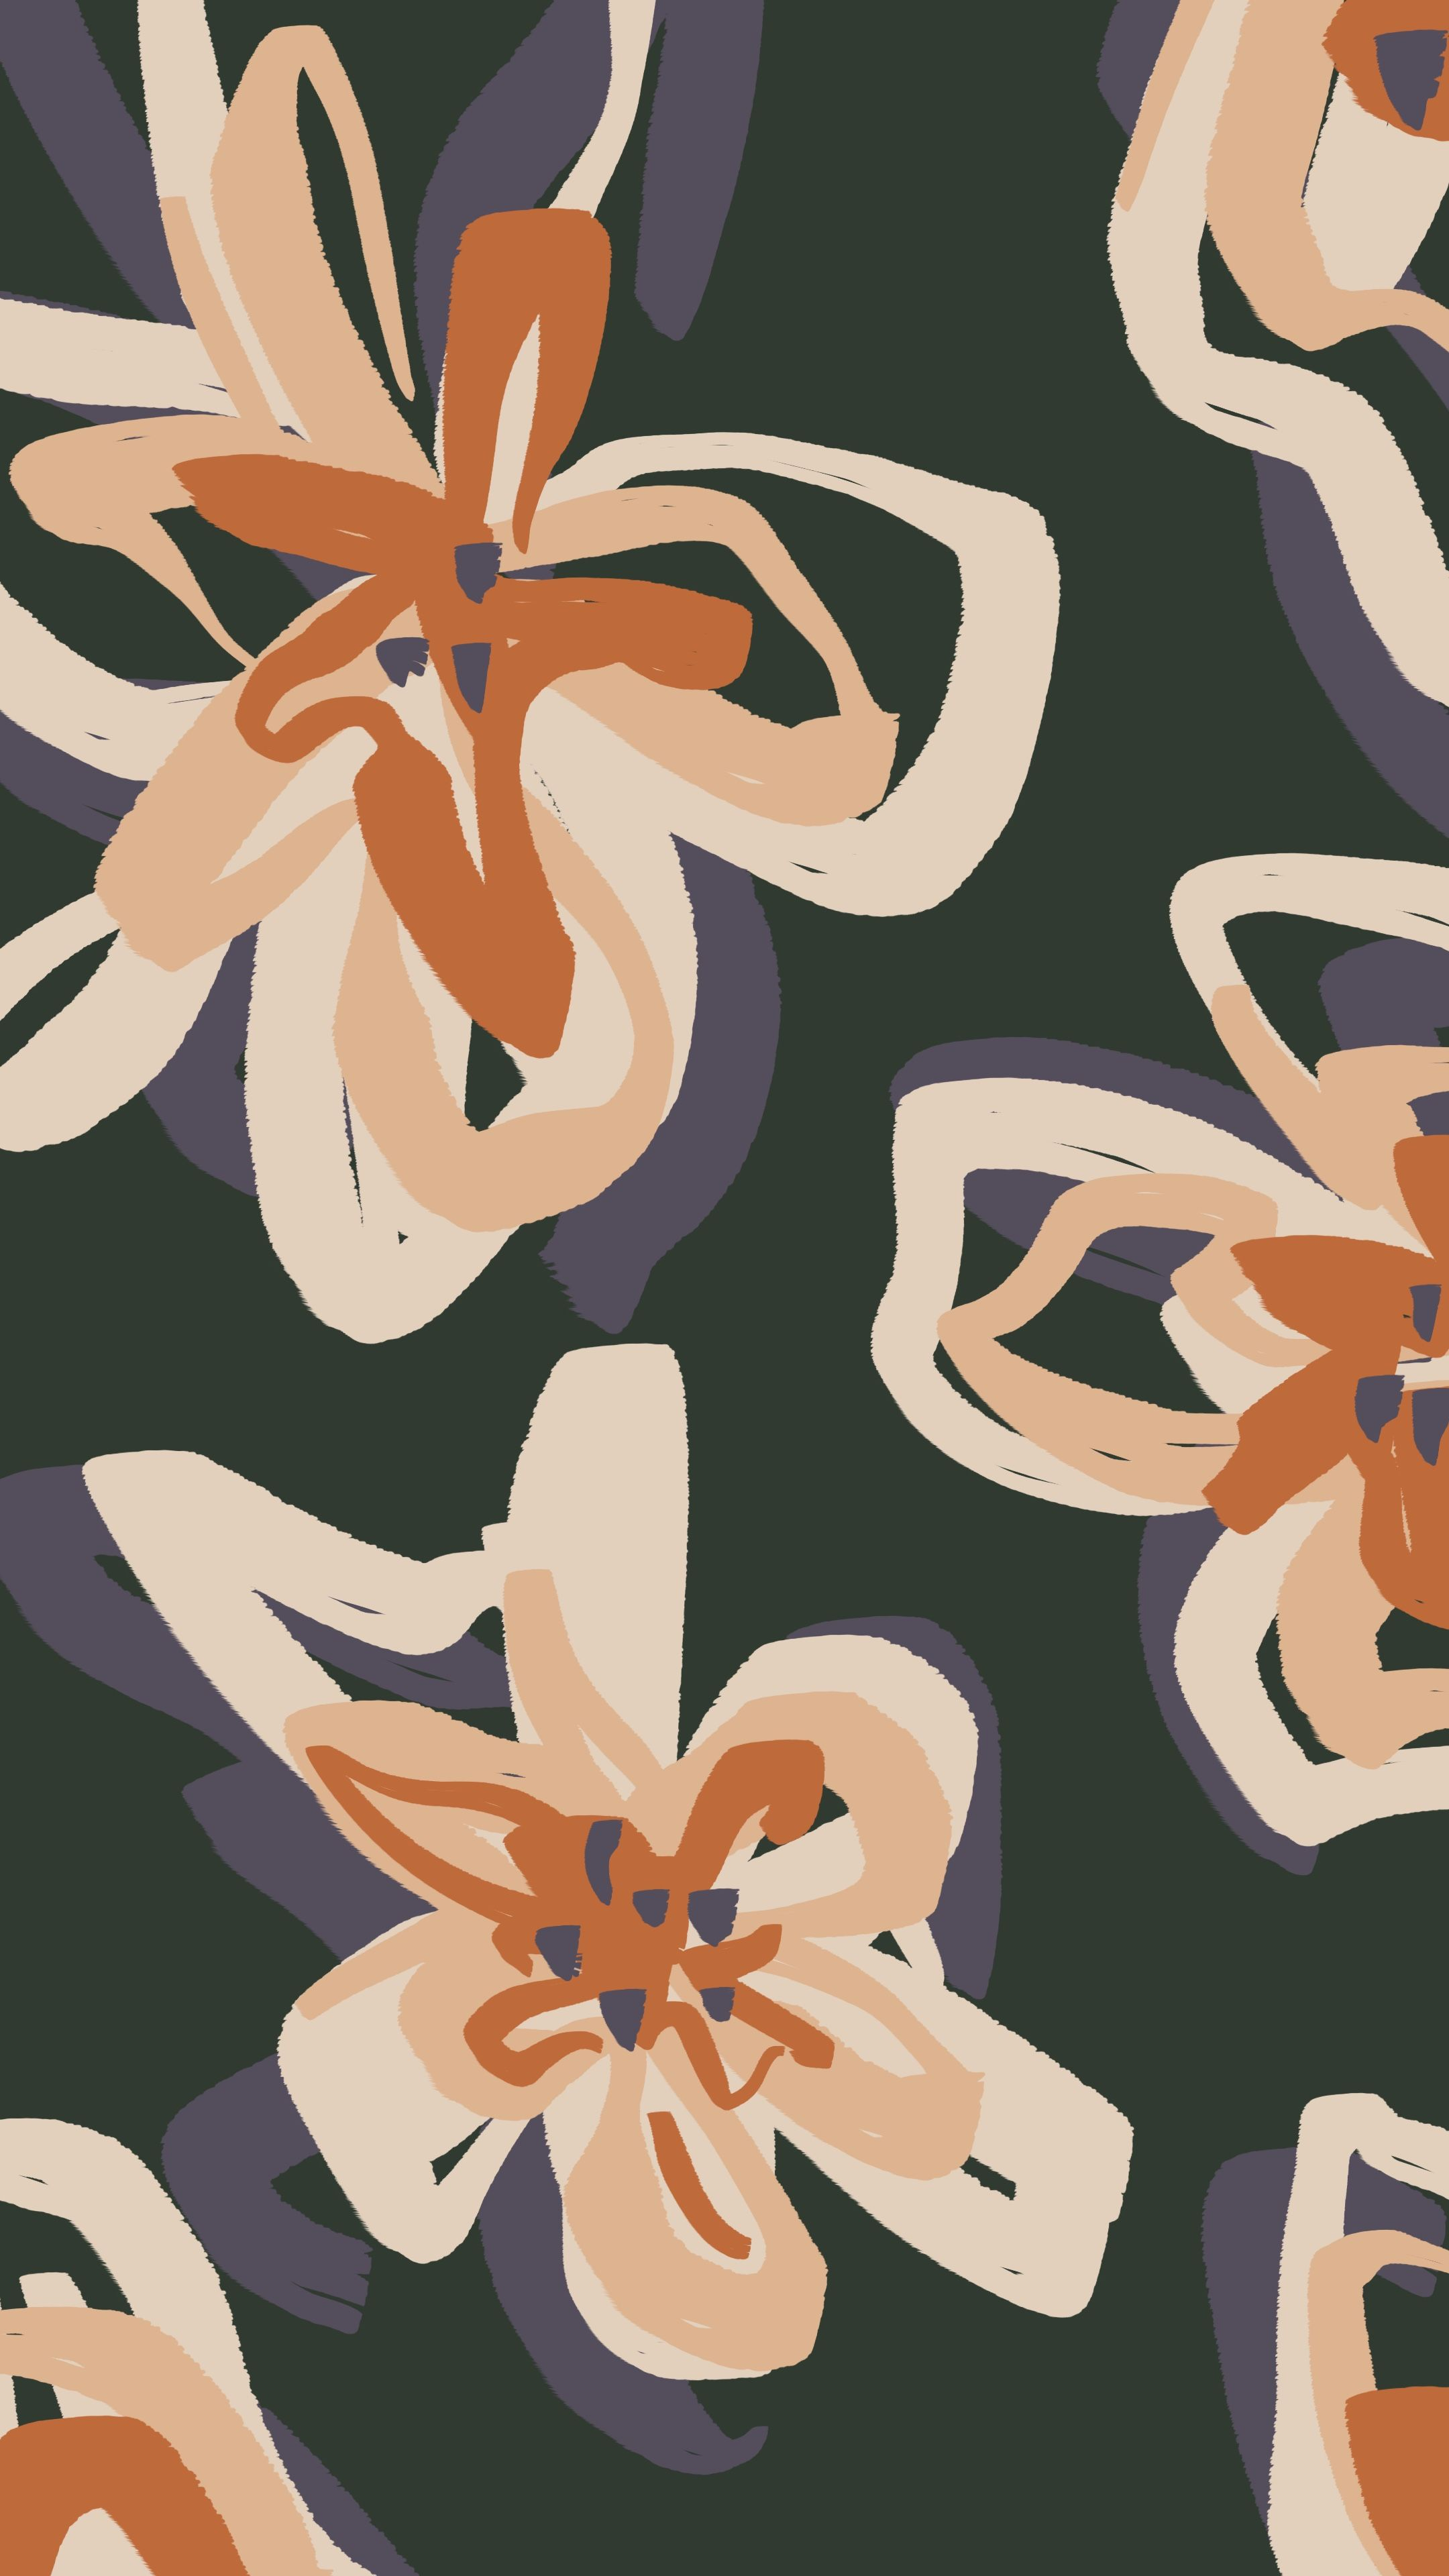 Fall Floral Repeated Flower Drawing Created In Procreate On Ipad Pro Autumn Colors Ip Cute Patterns Wallpaper Ipad Pro Wallpaper Cute Wallpaper Backgrounds Ideas for wallpaper ipad pro 11 images